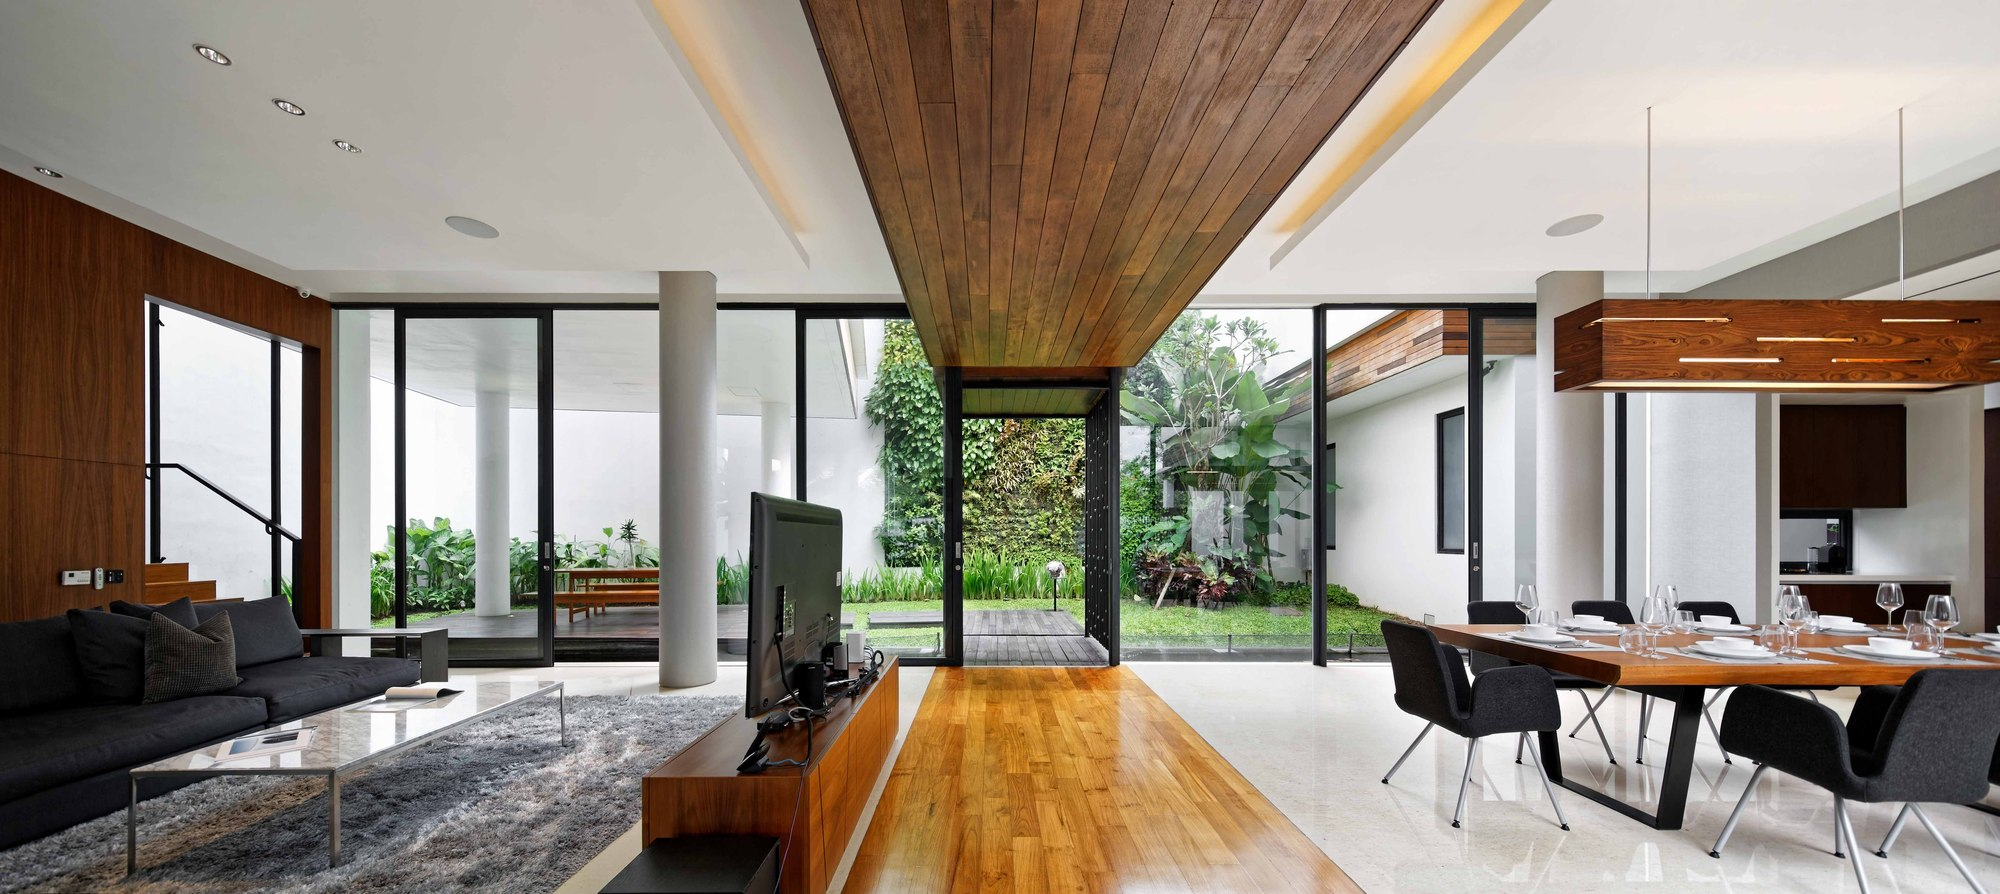 Modern interior with wooden accents inside the home